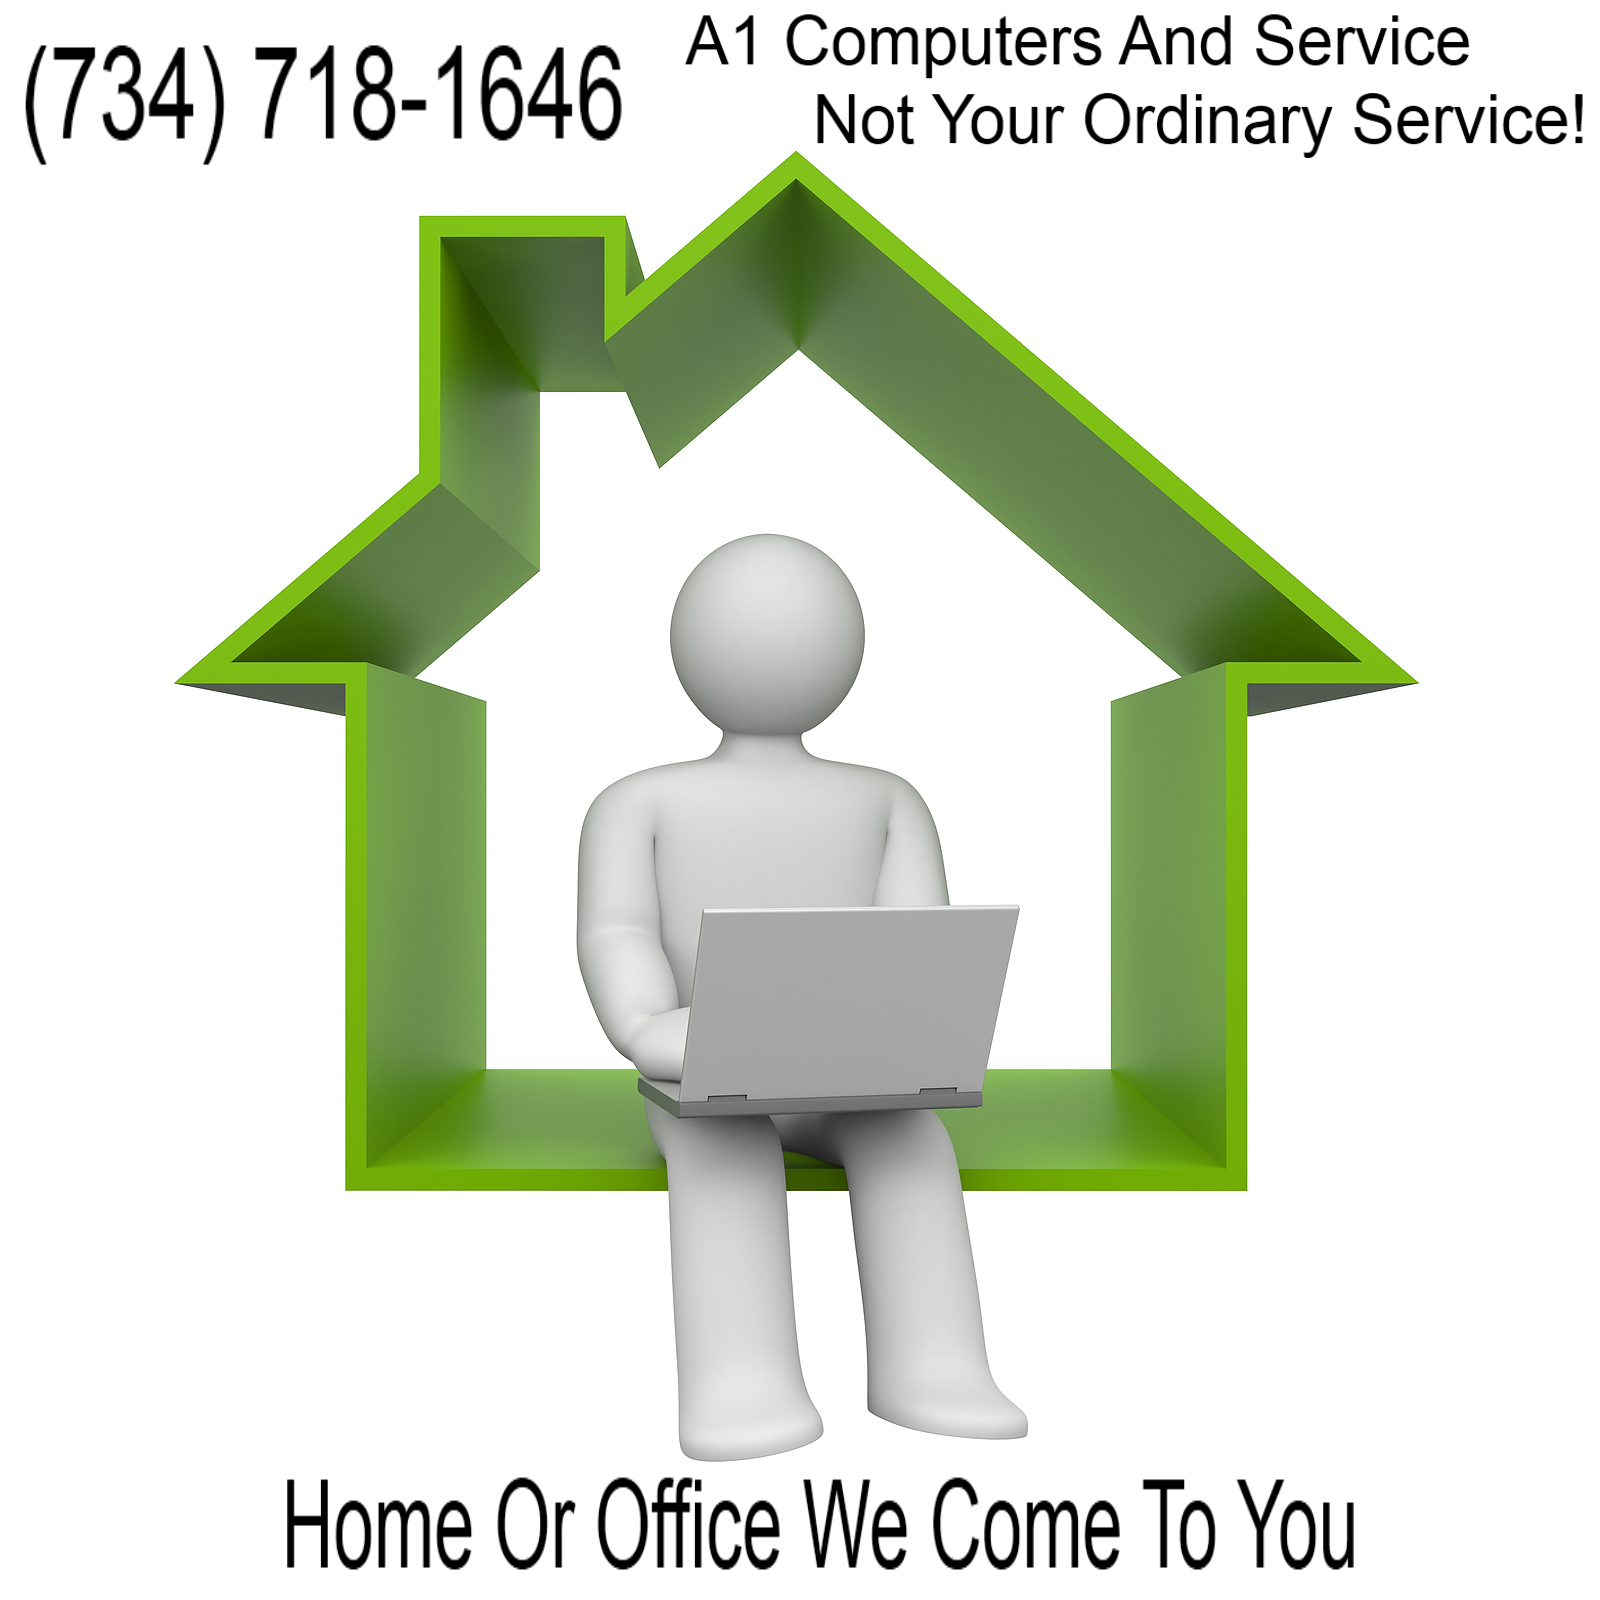 Onsite At Home or Business Computer Repair Service Home